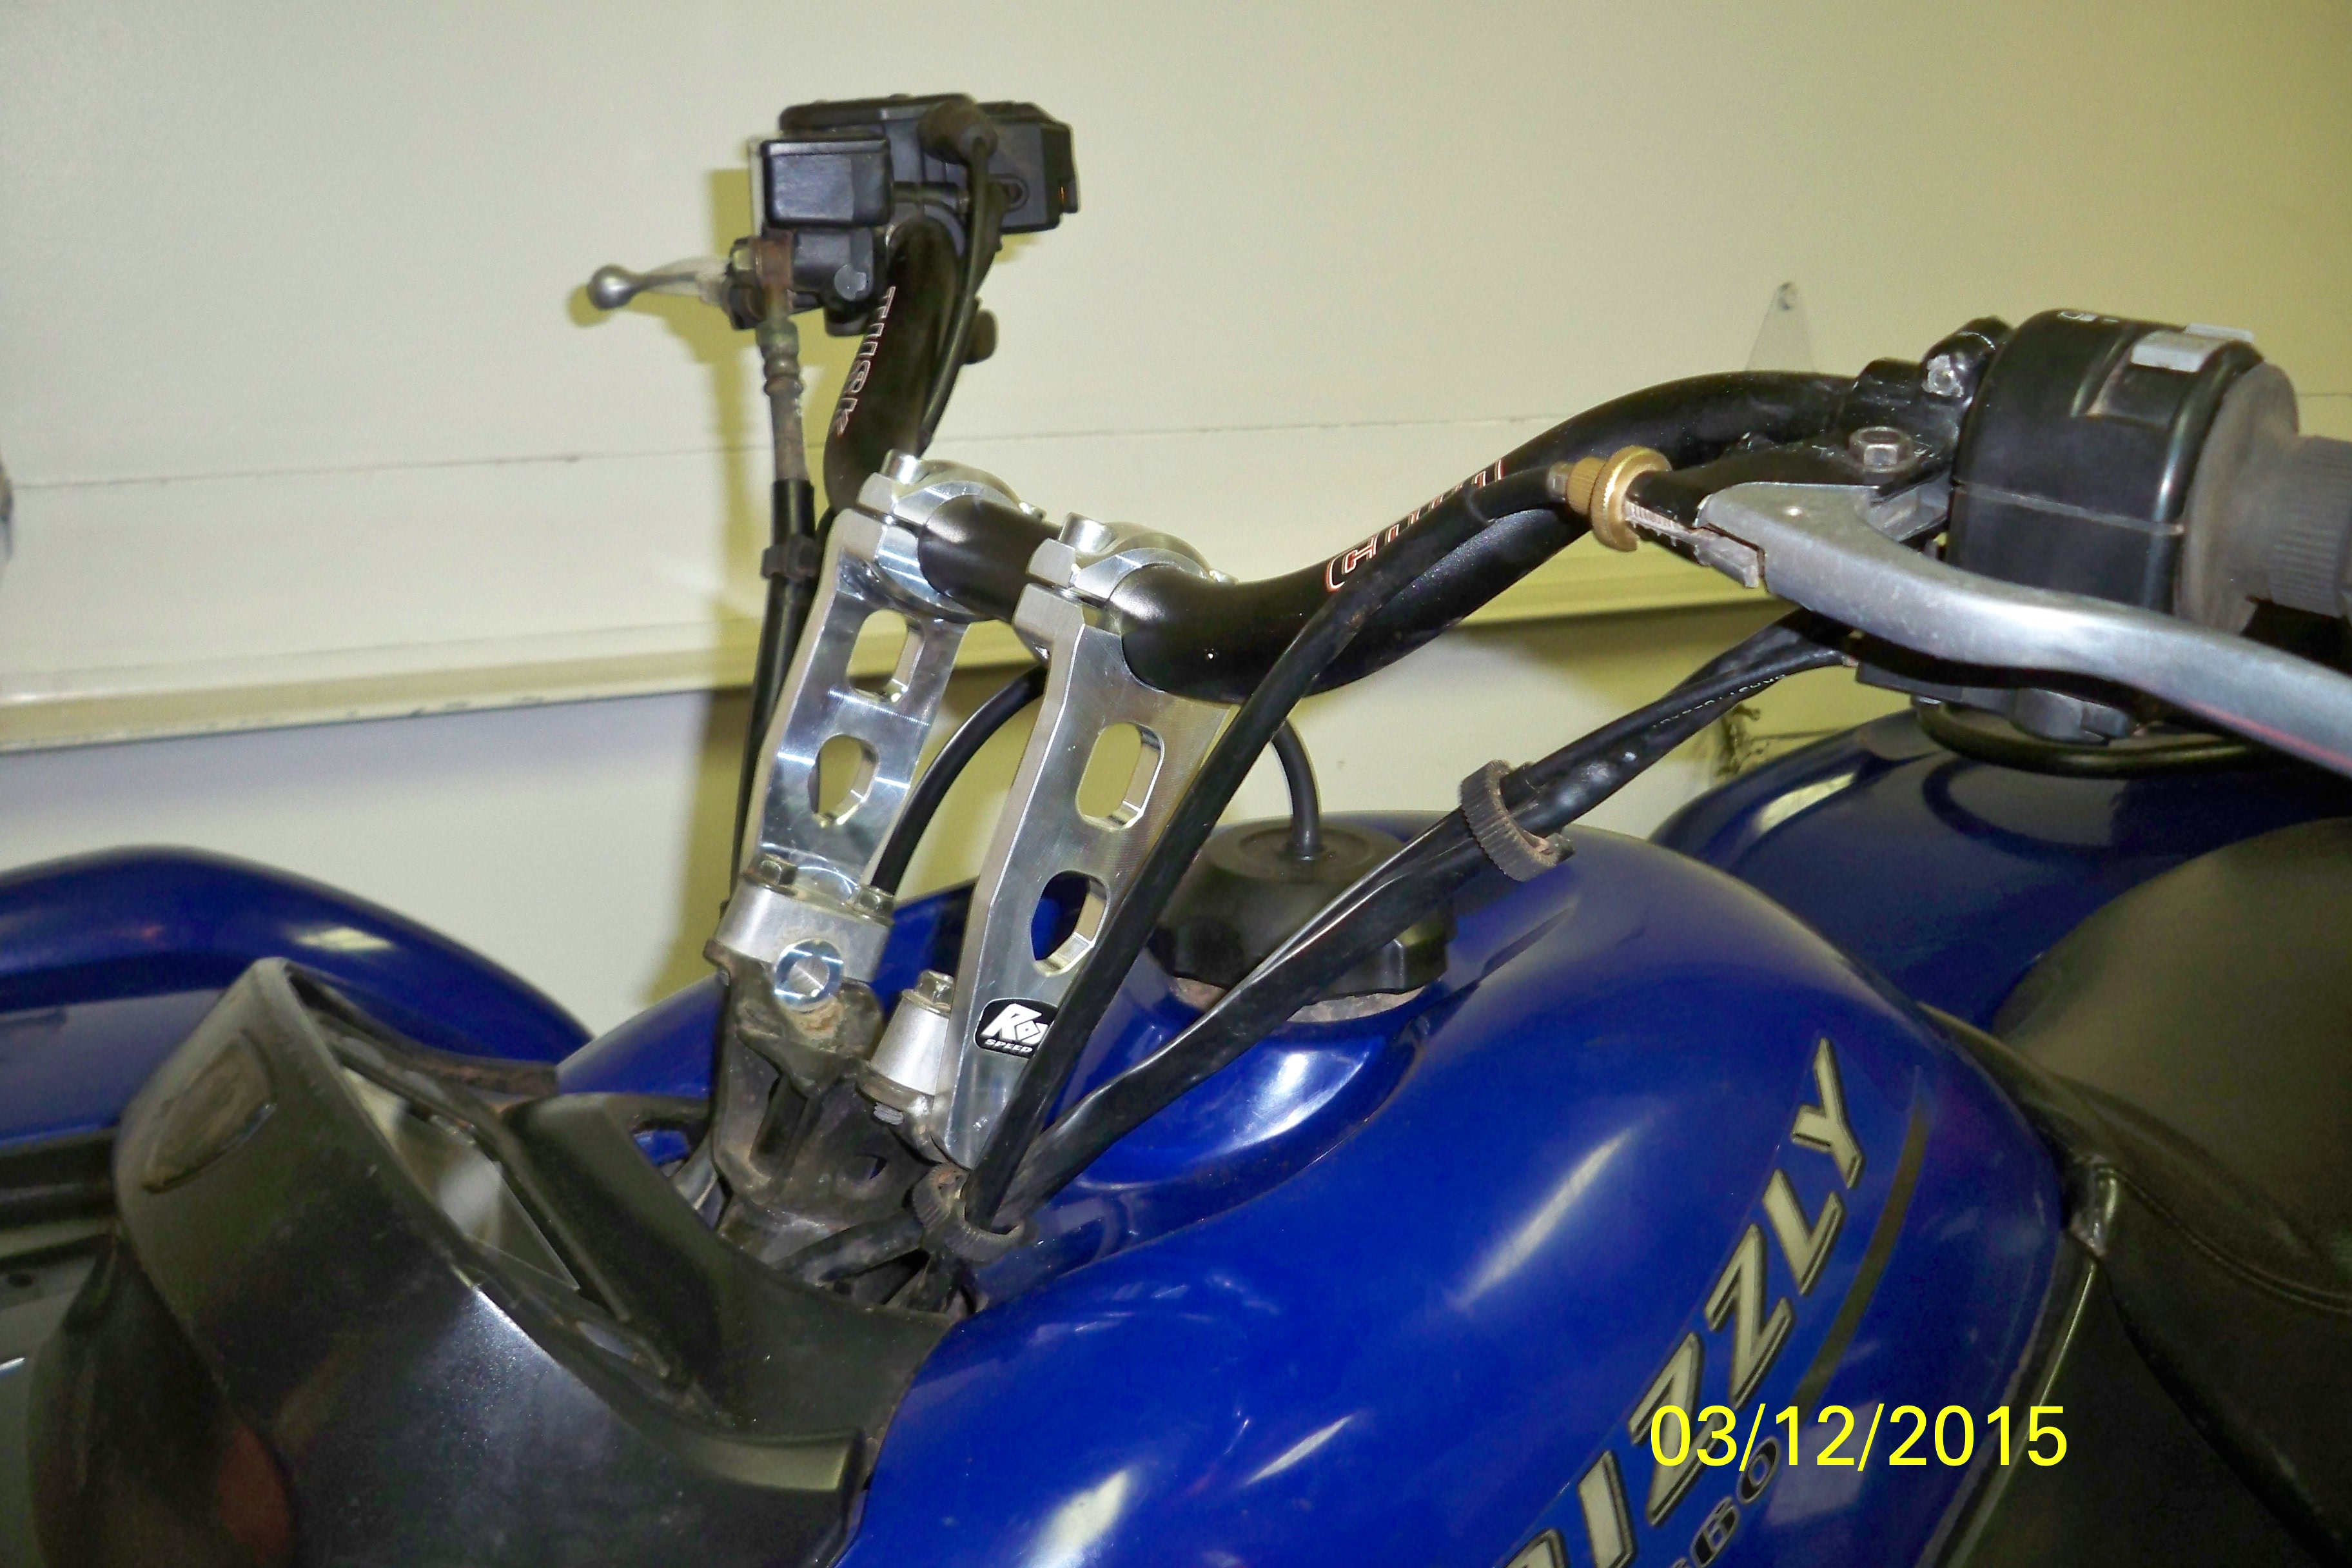 rox risers grizzly package - Page 8 - Yamaha Grizzly ATV Forum